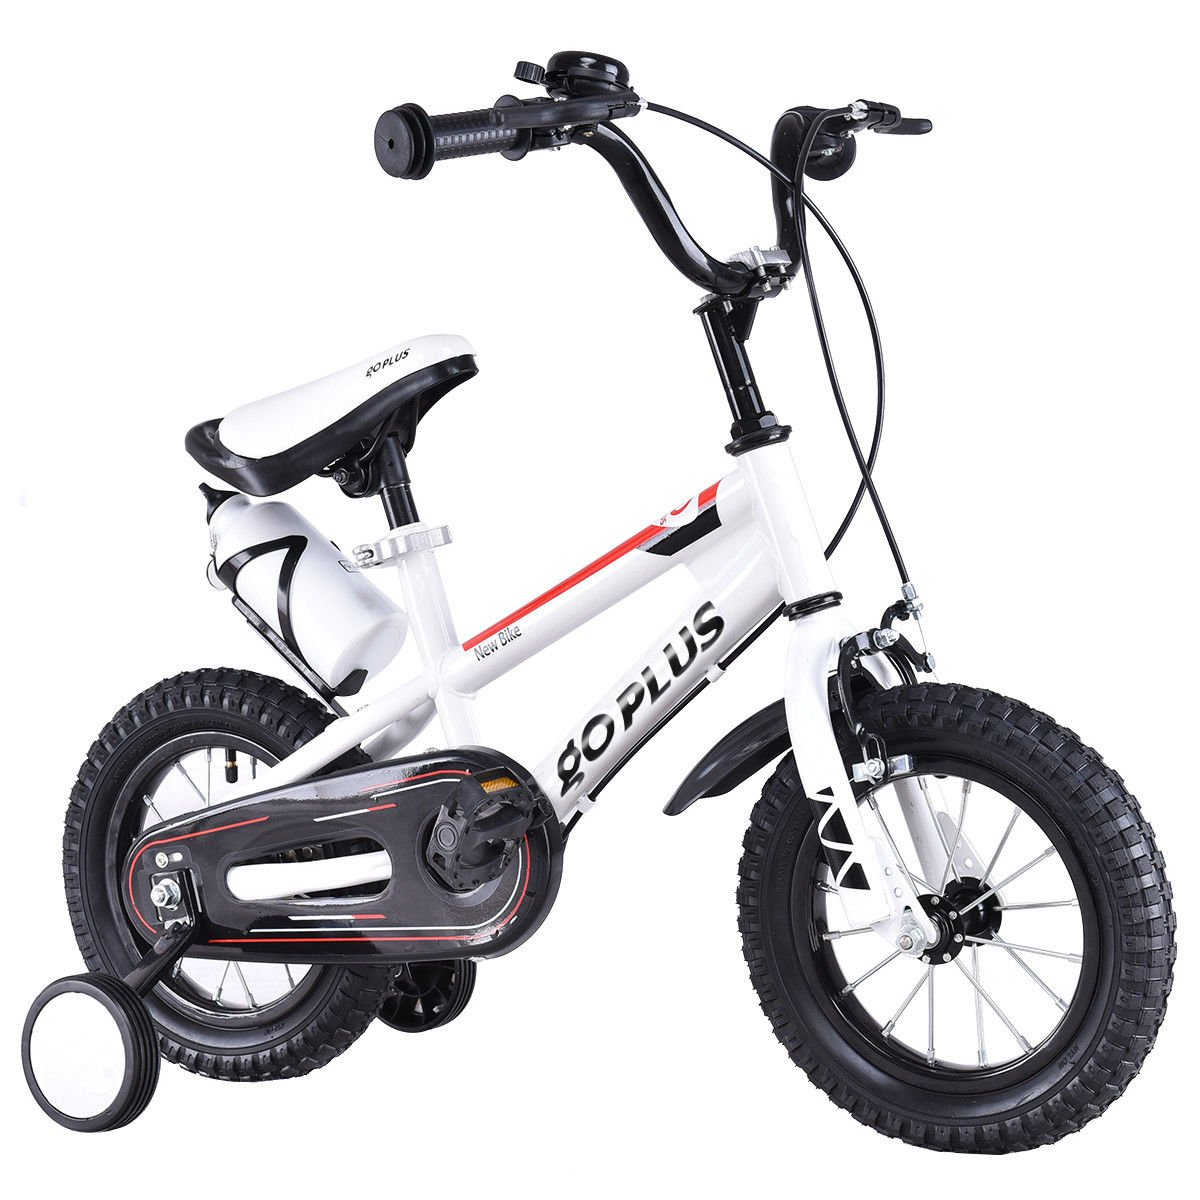 Goplus BMX Freestyle Kids Bike Boy's and Girl's Bicycle with Training Wheels Perfect Gift for Kids, 16'' (White)